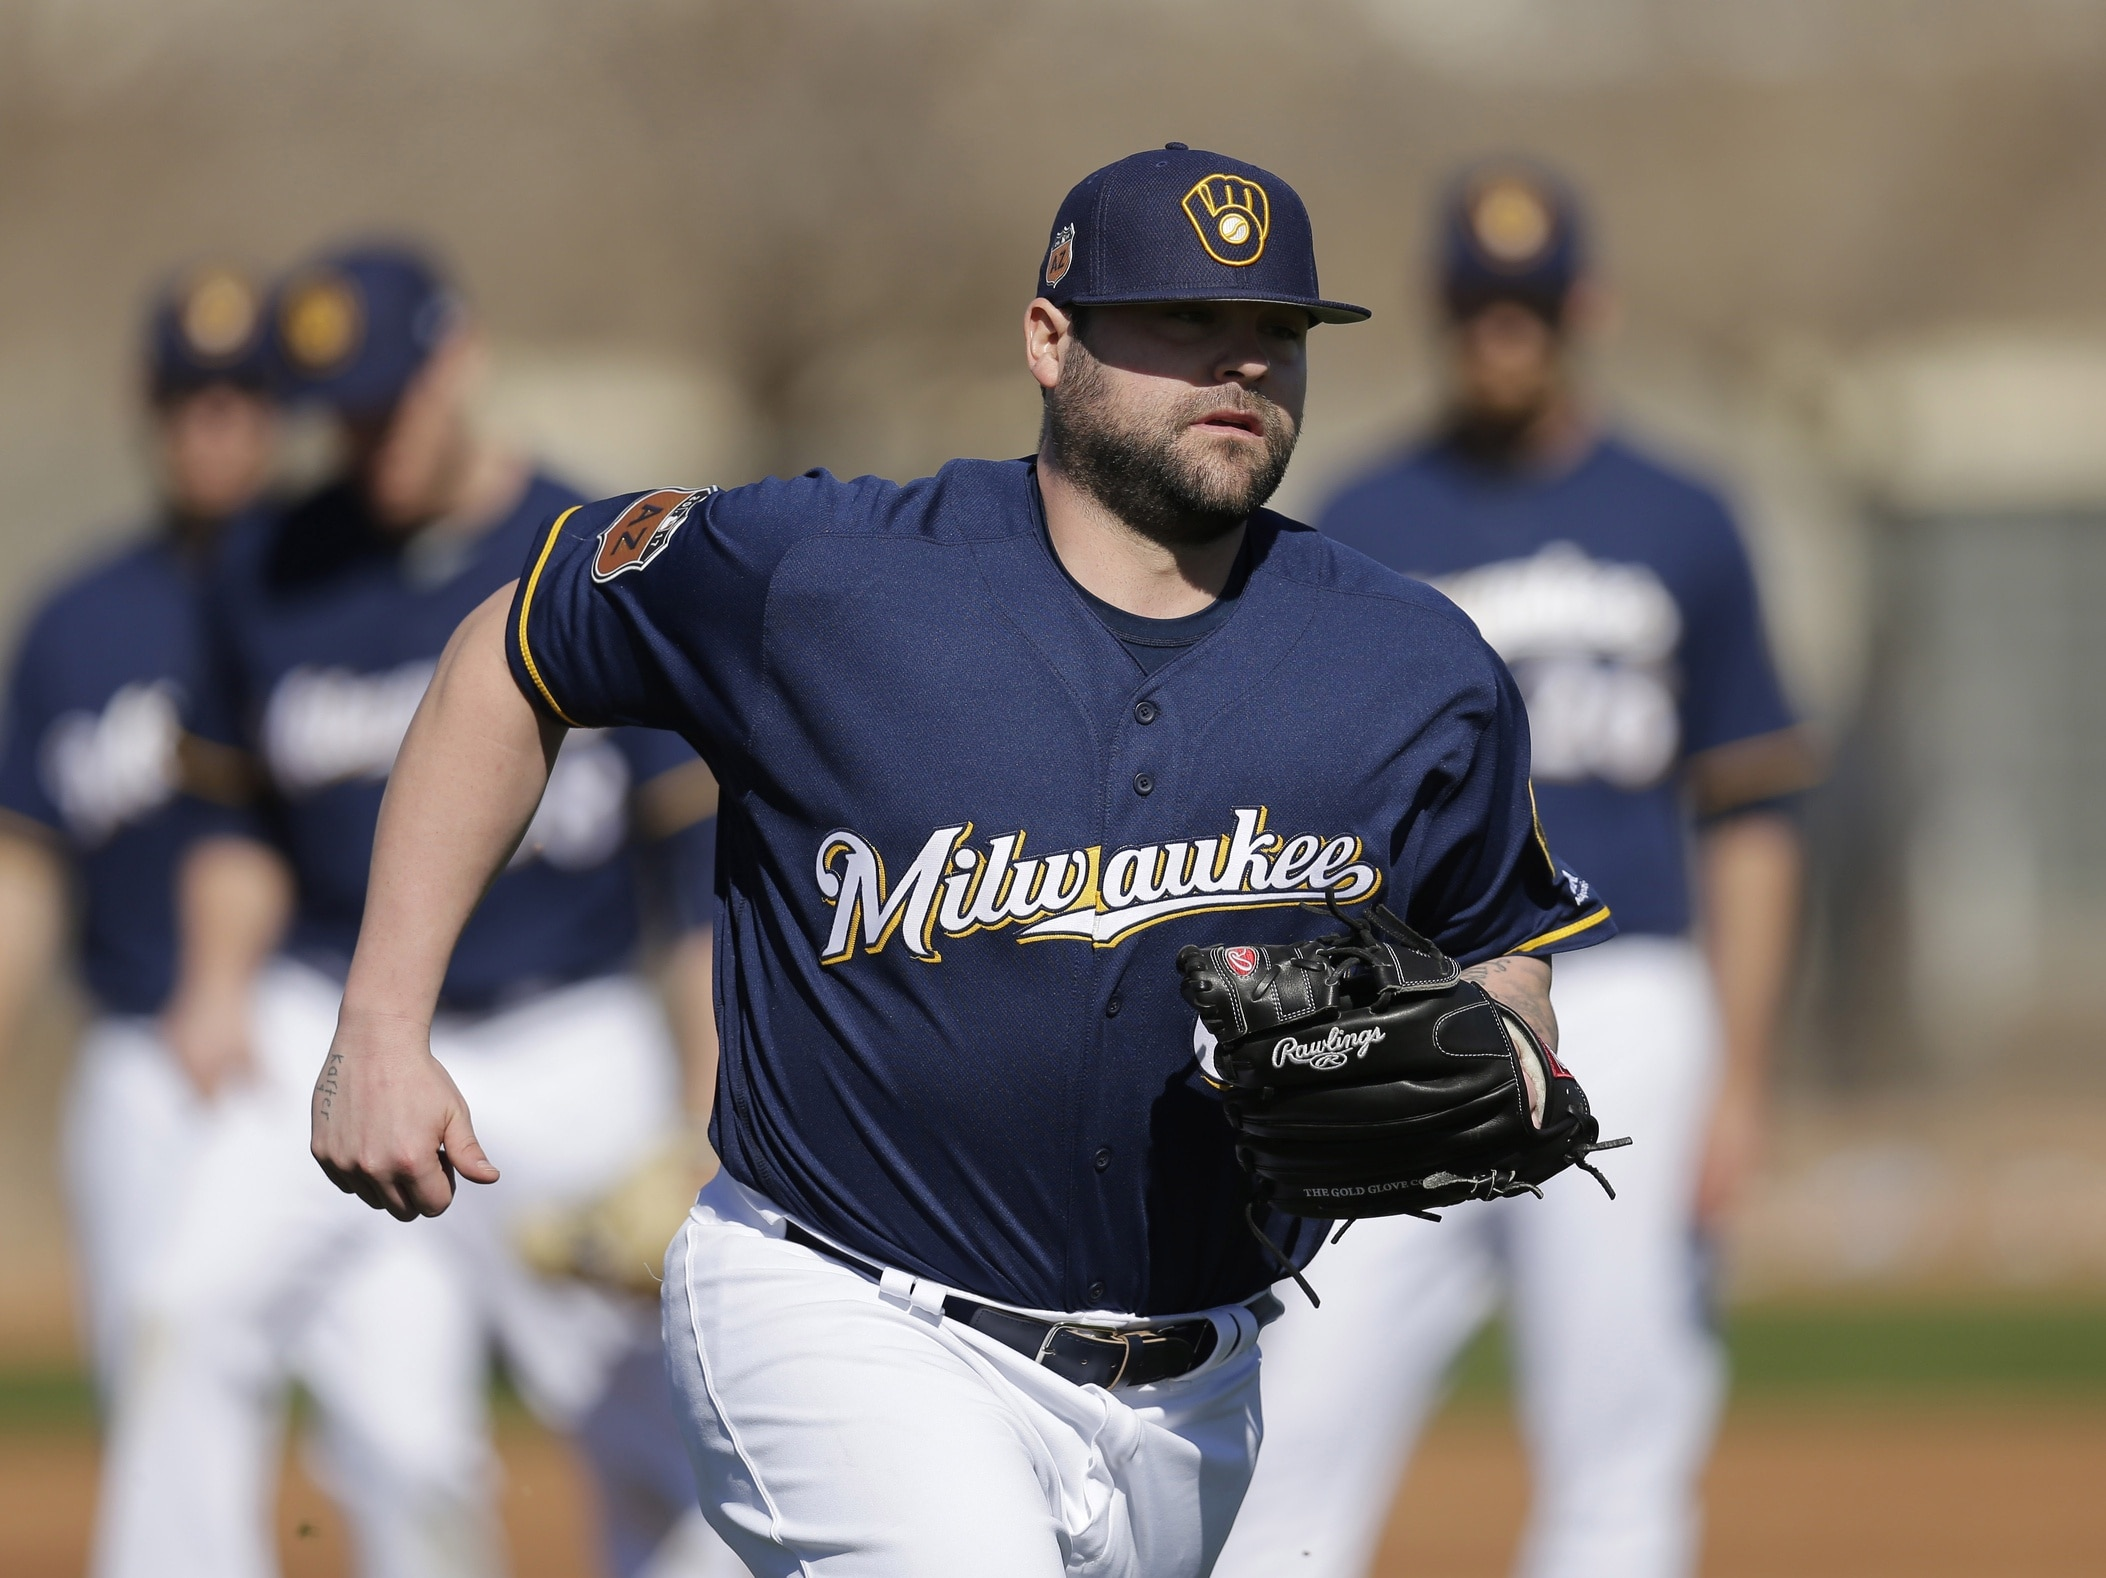 Feb 16, 2017; Maryvale, AZ, USA; Milwaukee Brewers relief pitcher Joba Chamberlain (62) covers first base during spring training camp drills at Maryvale Baseball Park. Mandatory Credit: Rick Scuteri-USA TODAY Sports